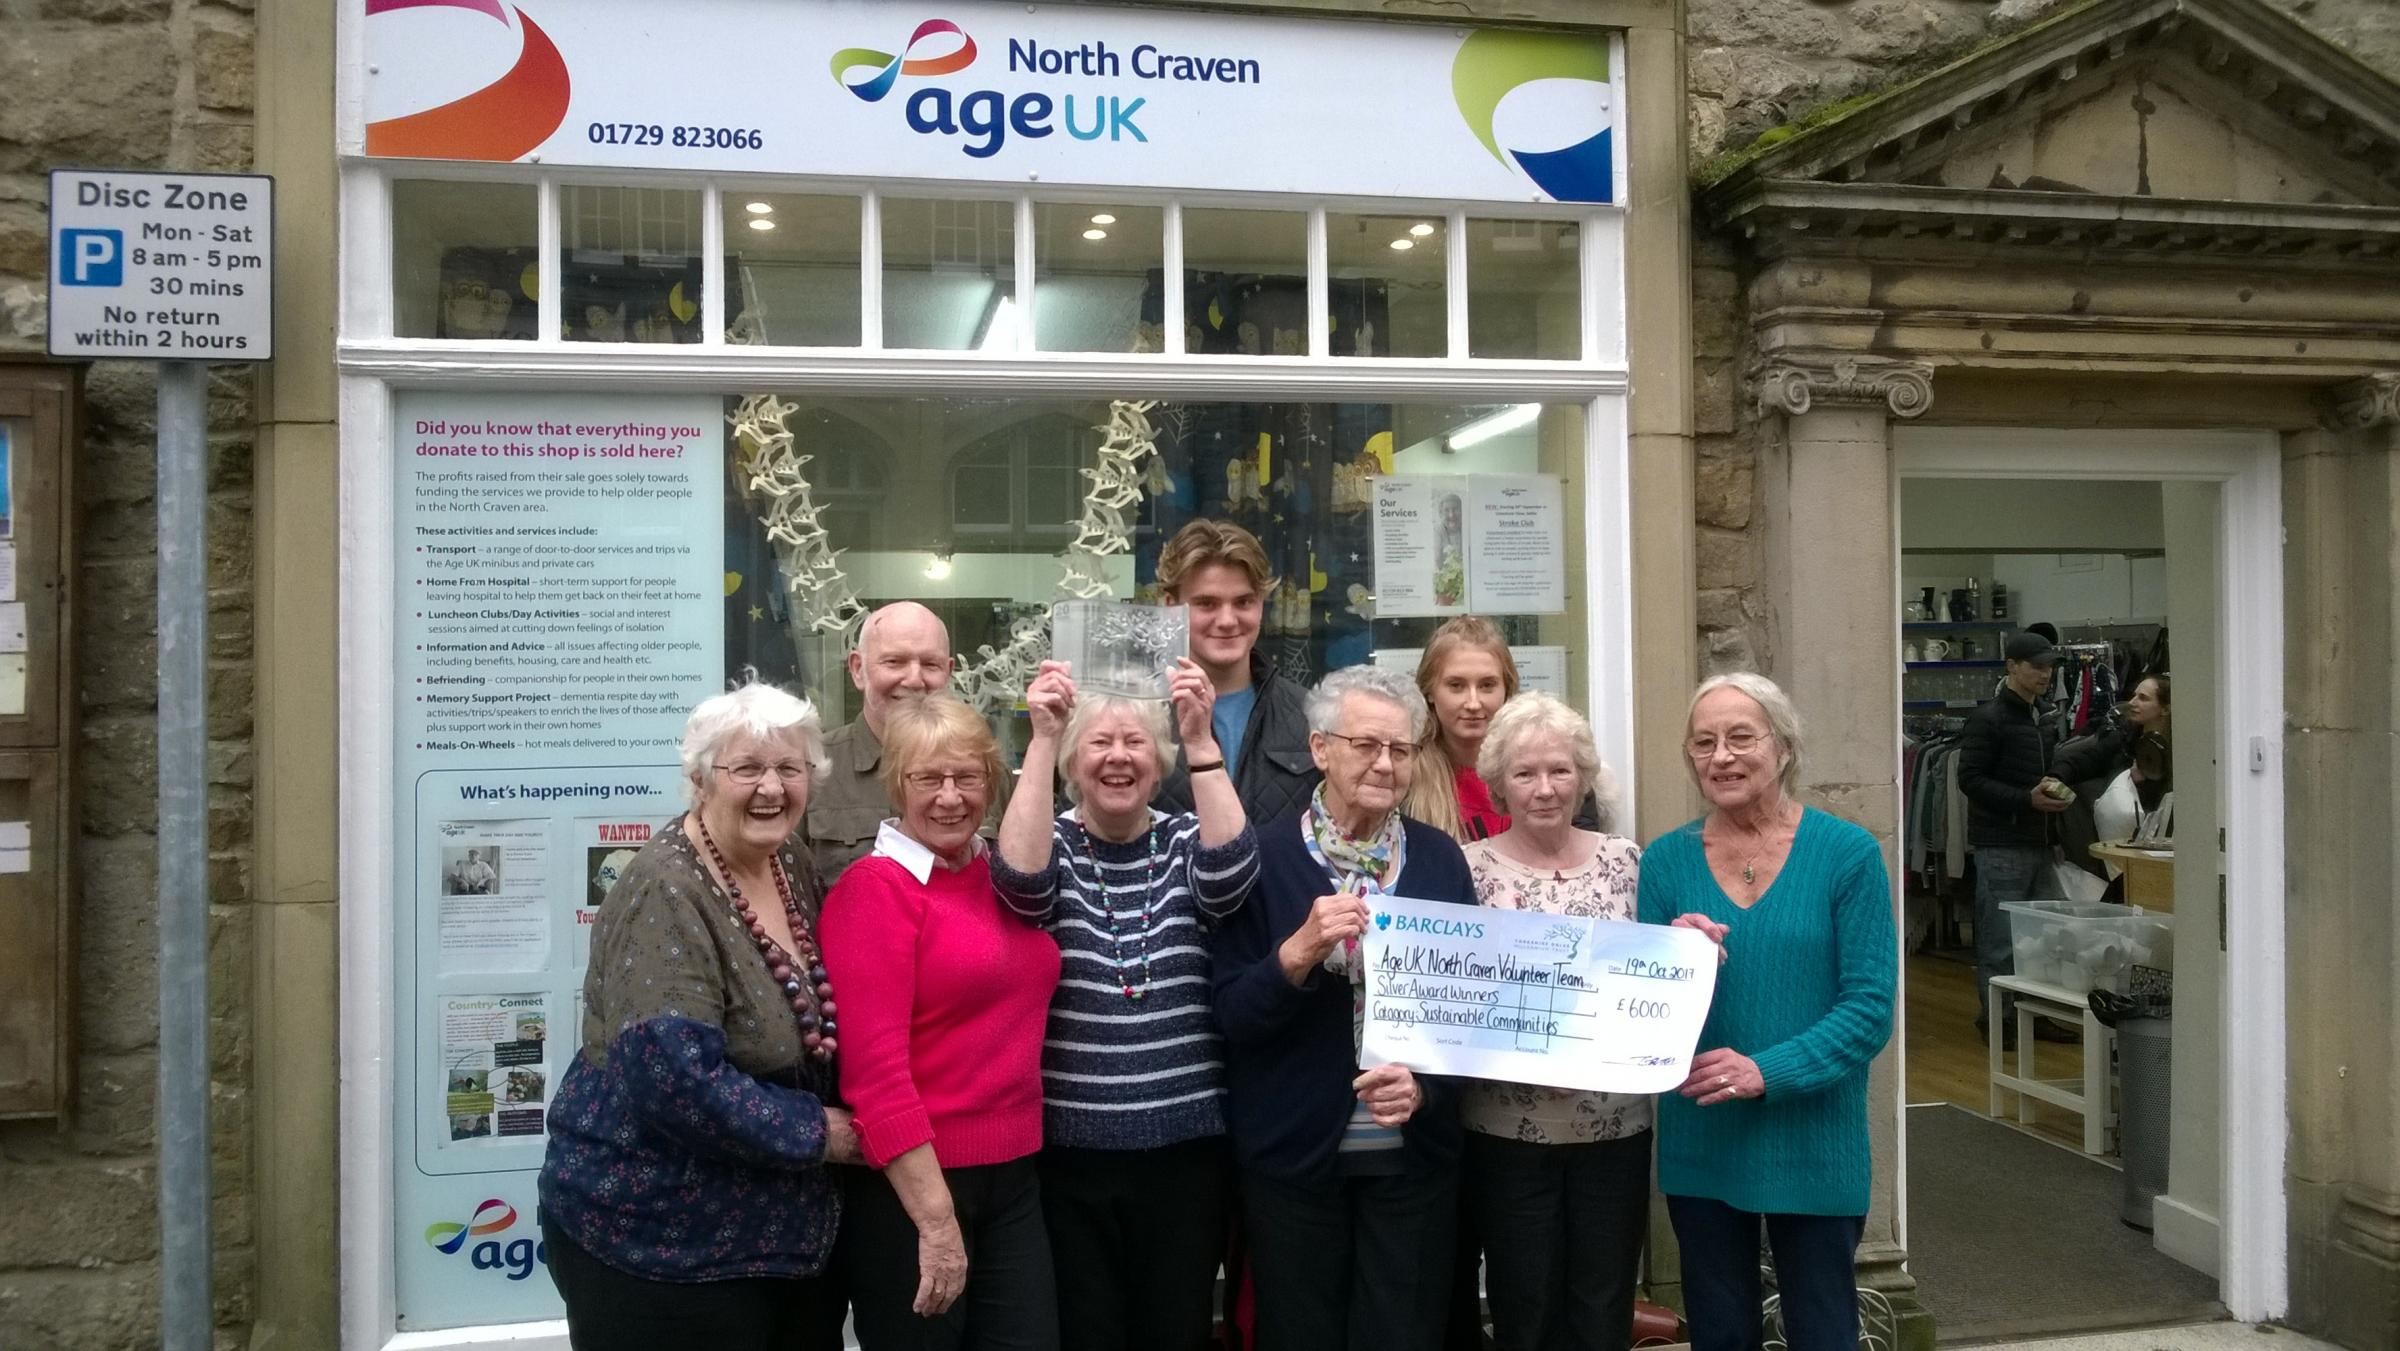 Volunteers at Age UK North Craven